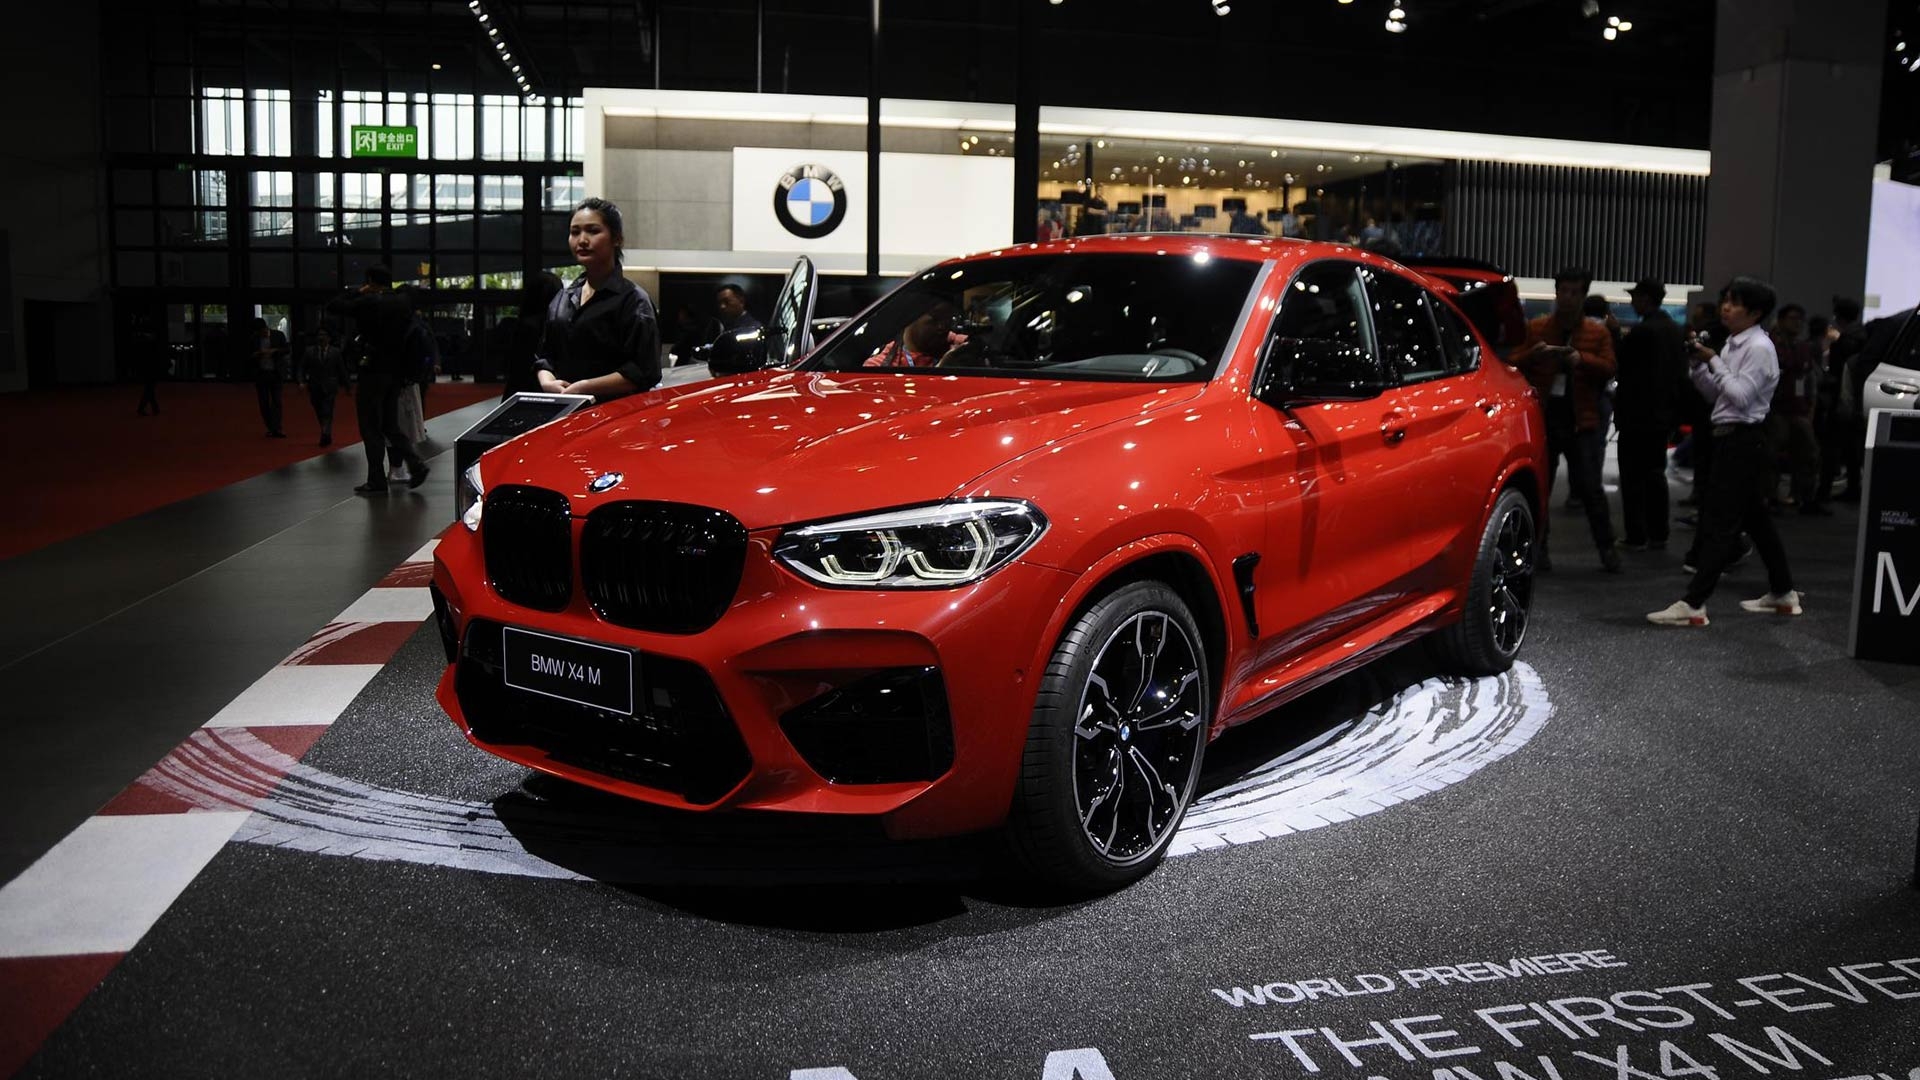 Luxury 2019 Vehicles: China, What Crisis? Luxury Star Cars Of The 2019 Shanghai